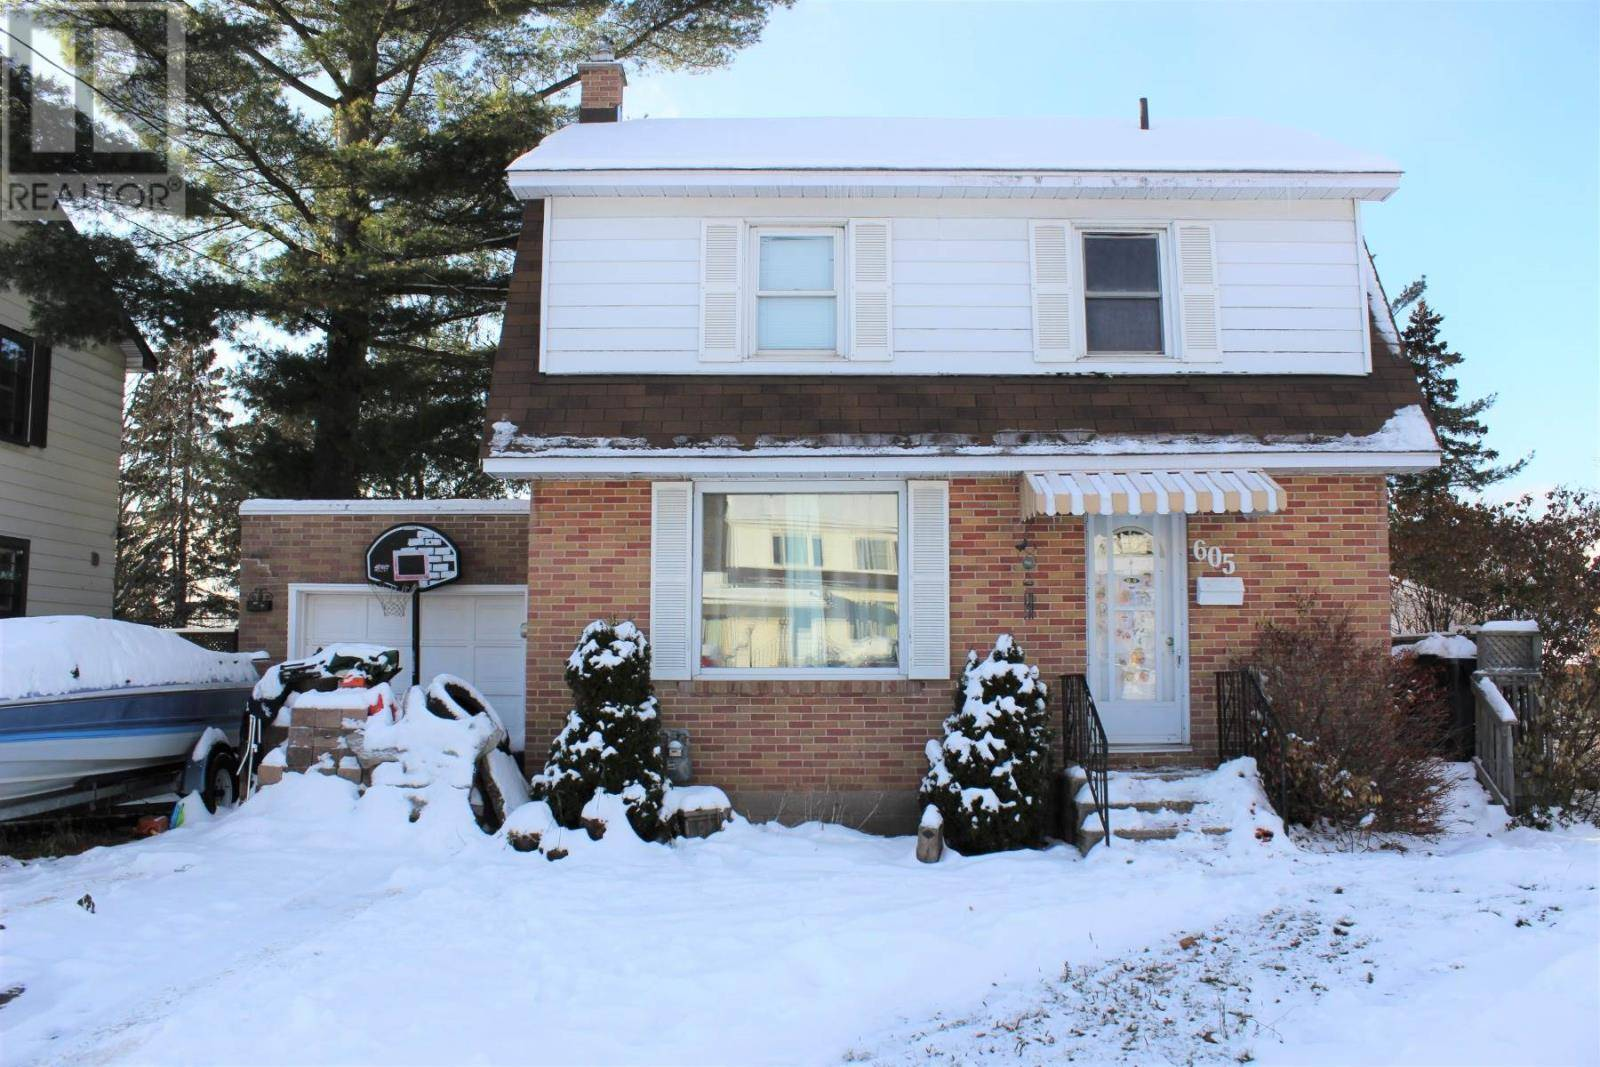 House for sale at 605 Bush St Sault Ste. Marie Ontario - MLS: SM127423